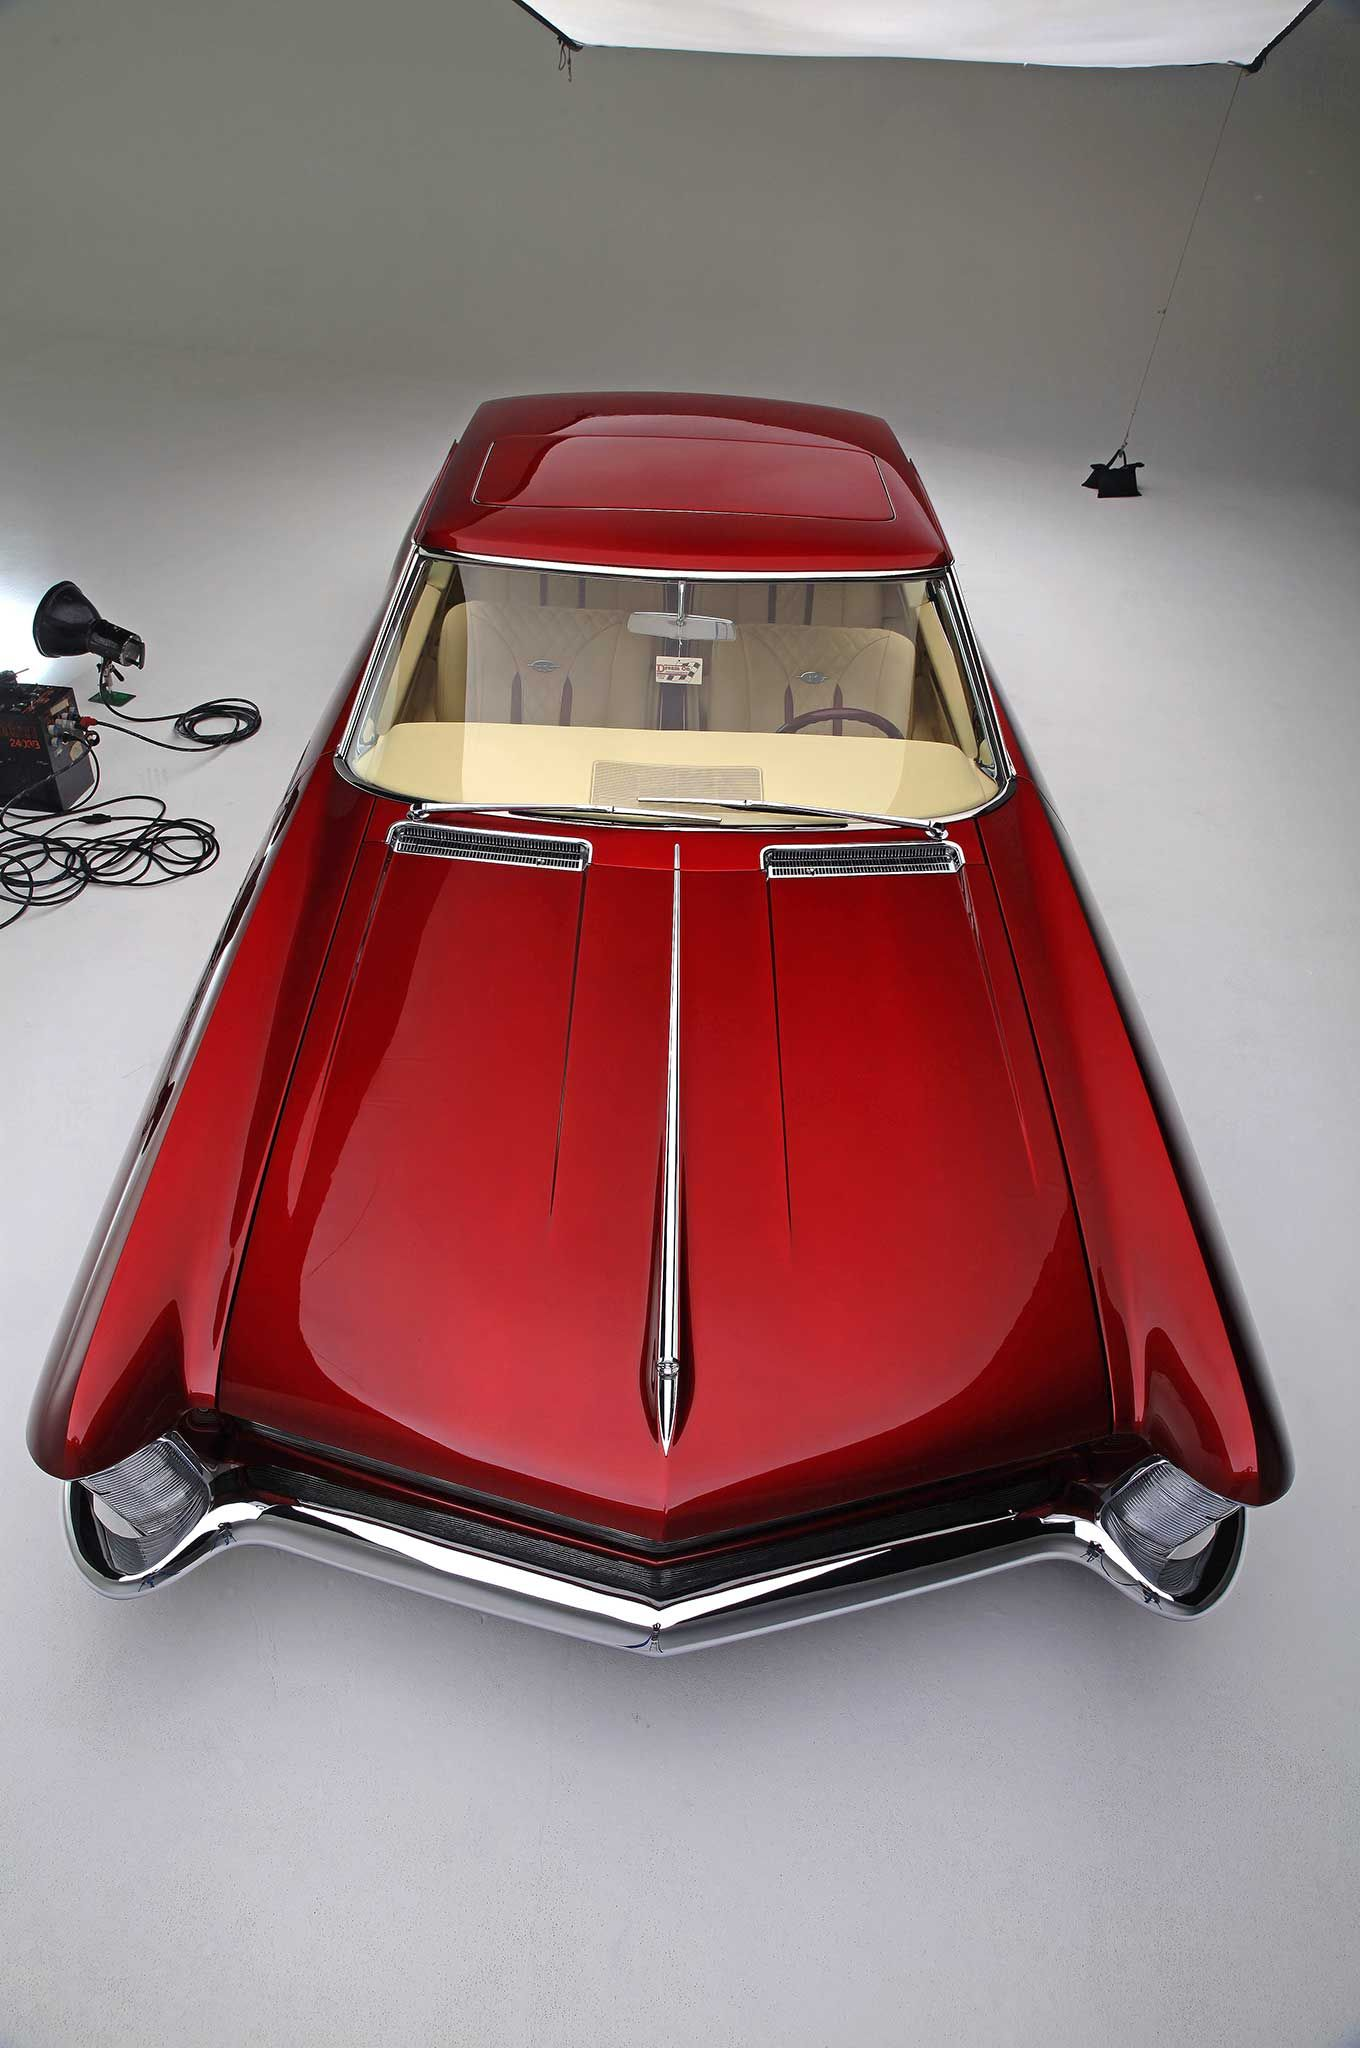 Top Notch Customs Builds A Clean 65 Buick Riviera Buick Riviera Buick 1965 Buick Riviera